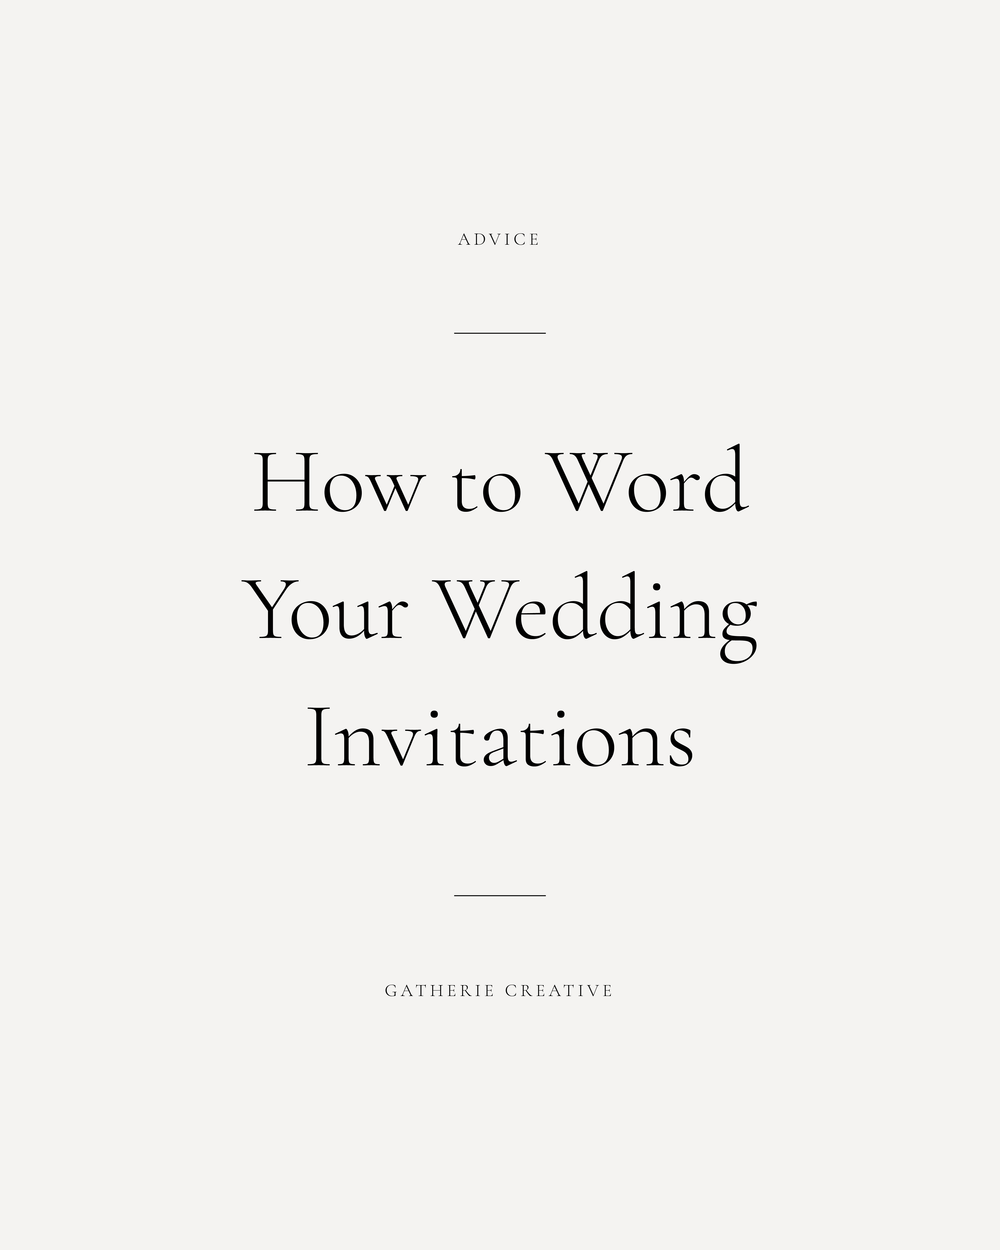 Wedding Invite Etiquette Wording: WEDDING INVITATION WORDING ETIQUETTE